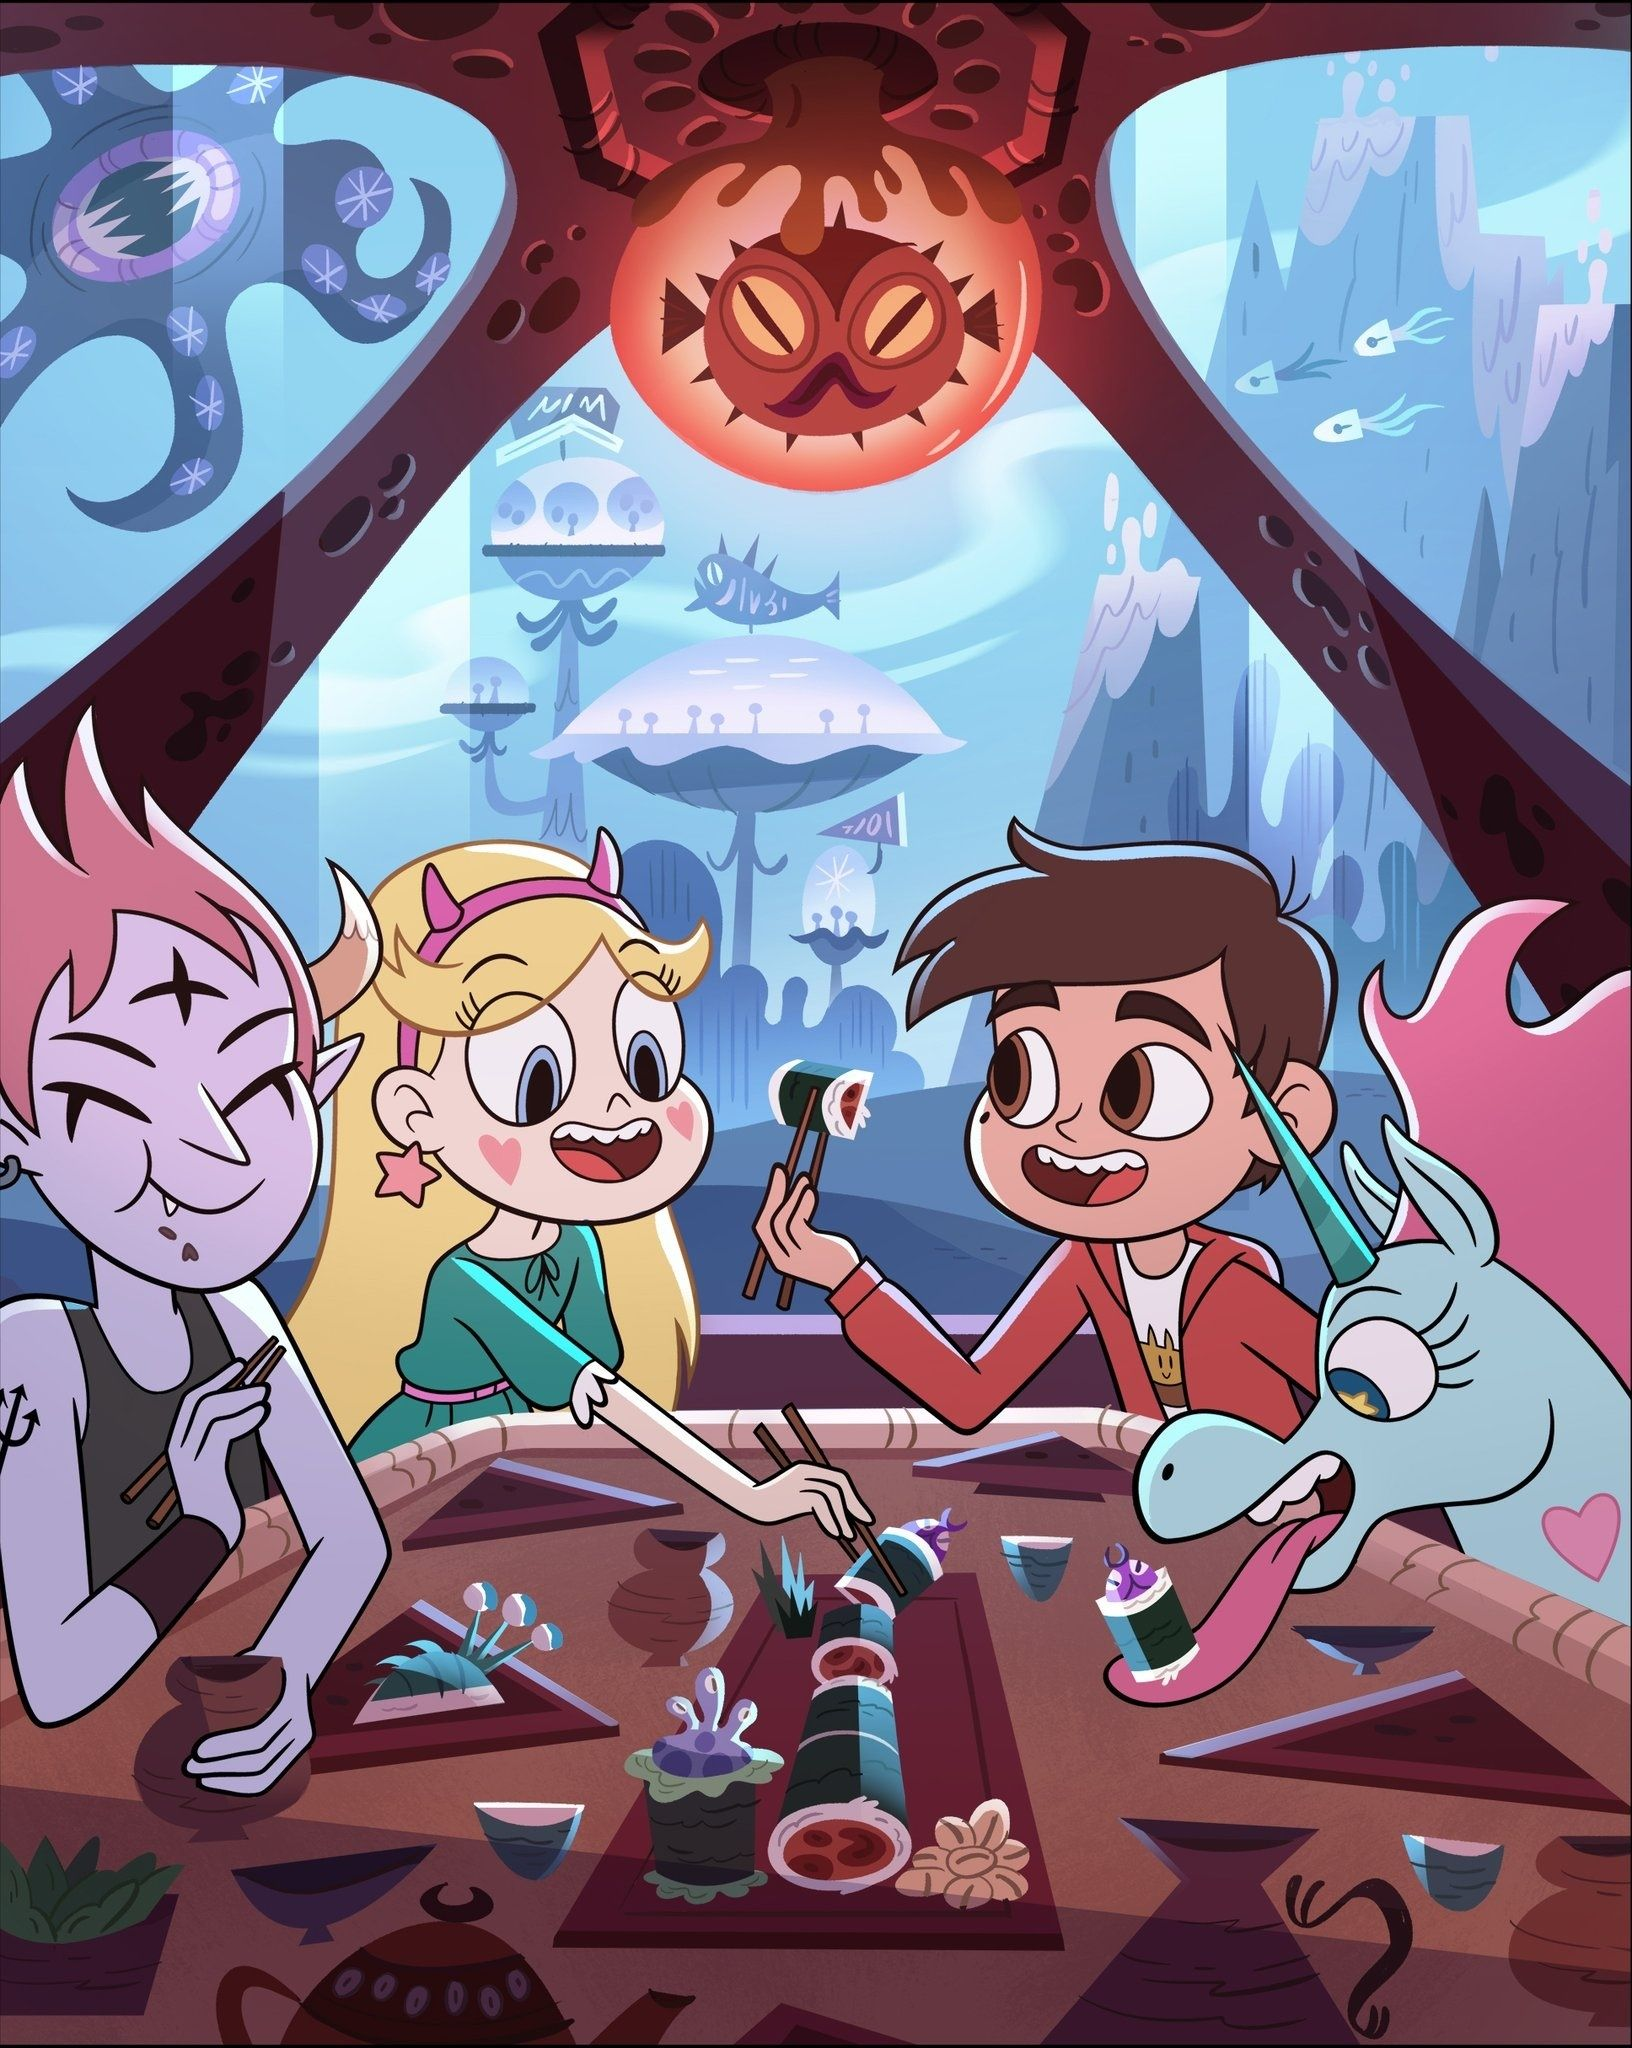 Star Vs The Forces Of Evil Season 4 2470038 Hd Wallpaper